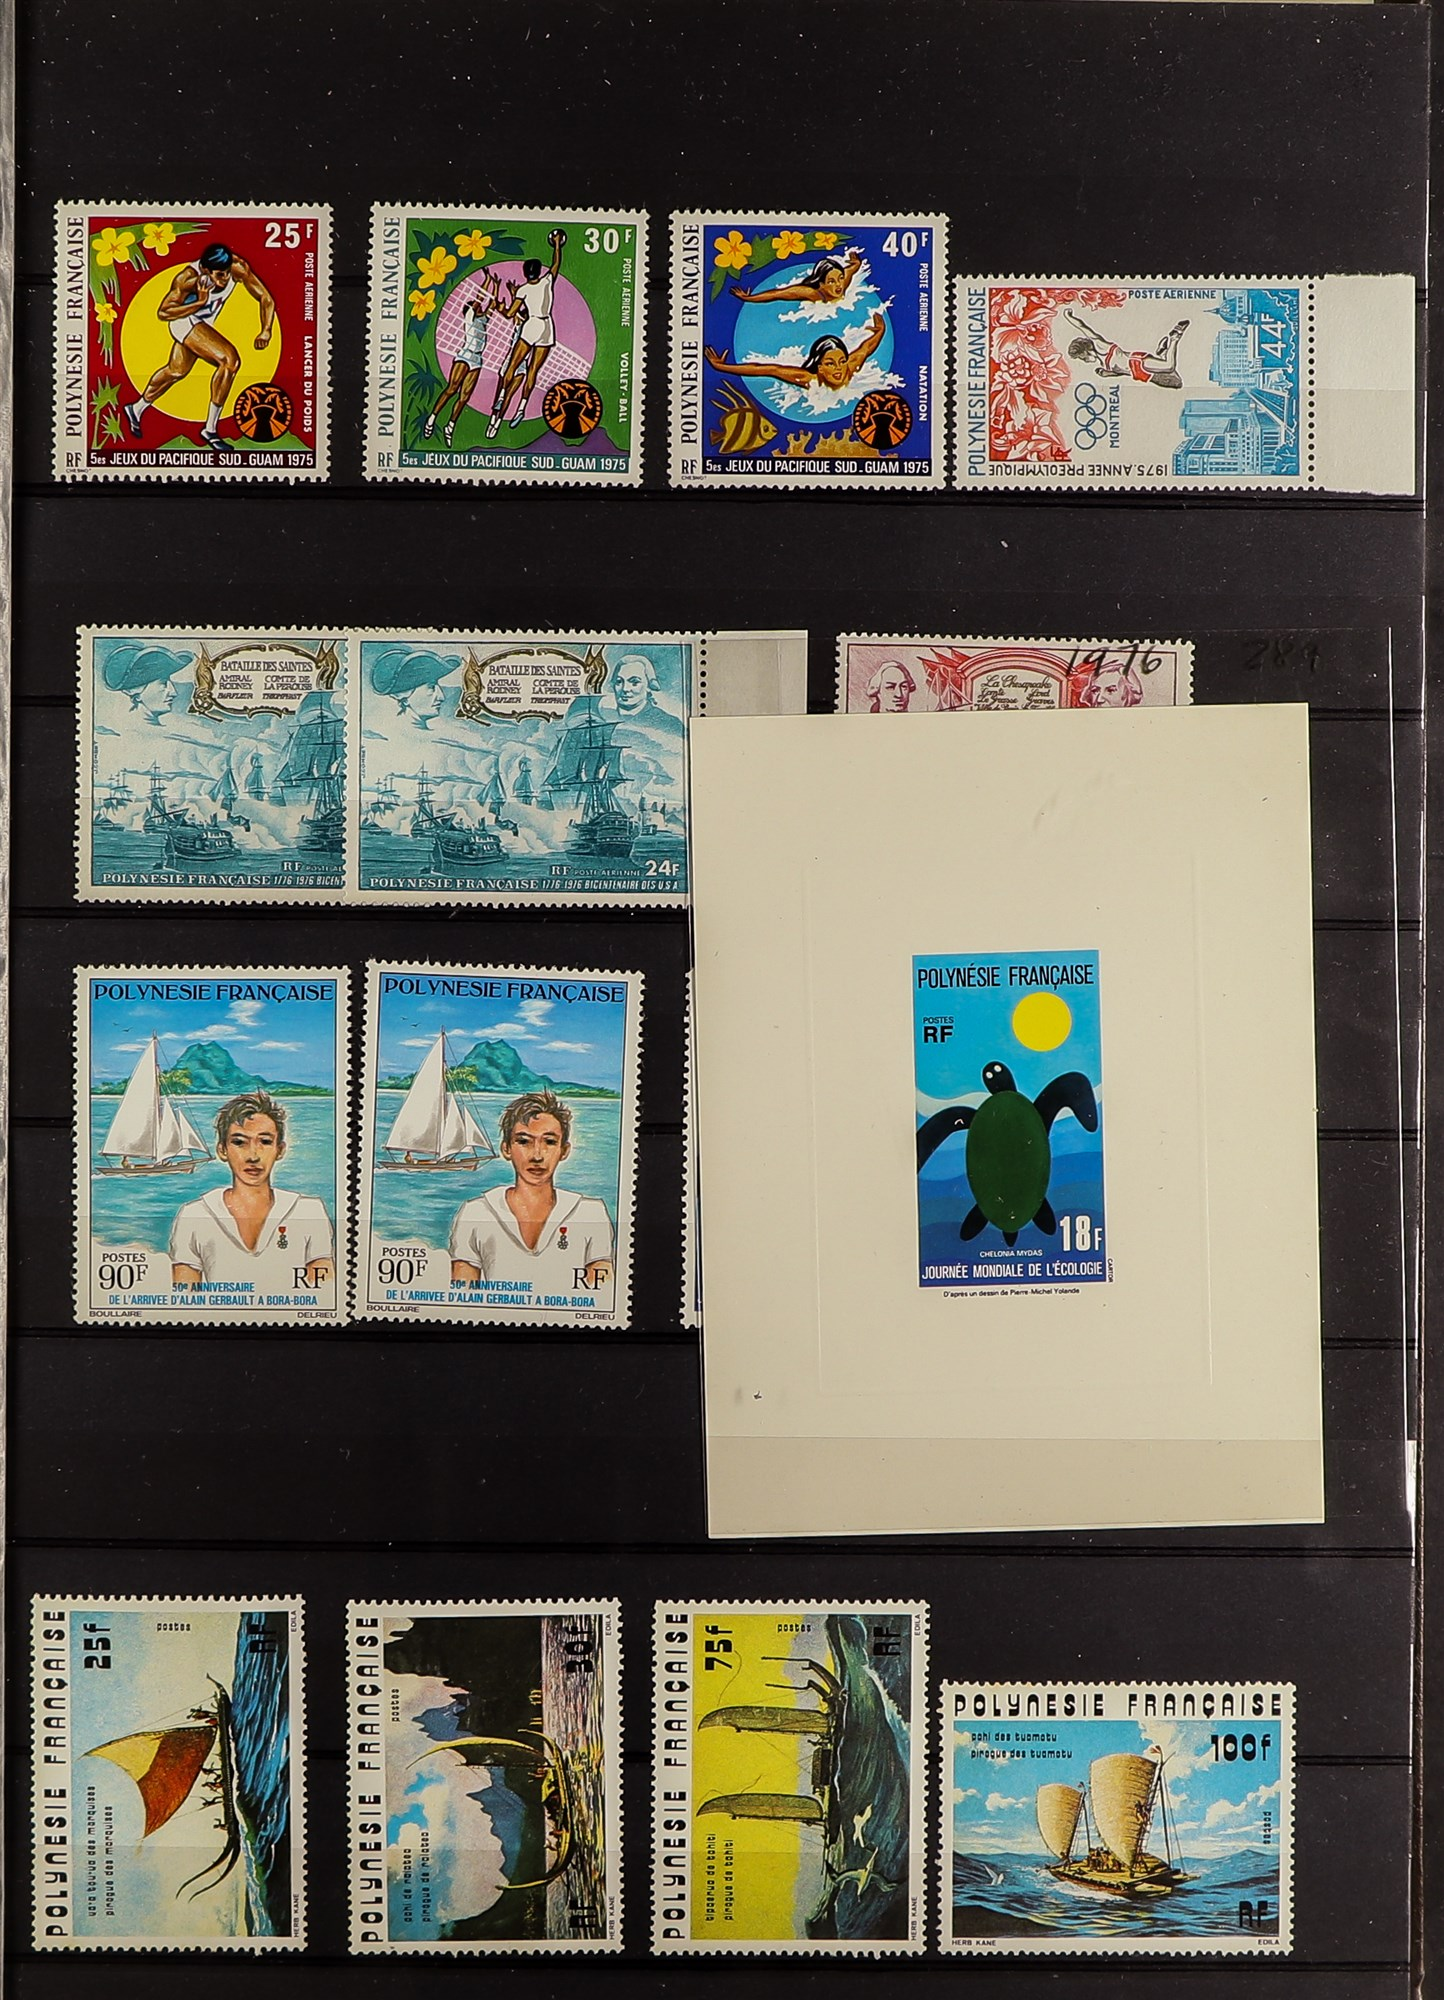 FRENCH COLONIES POLYNESIA 1948-2009 mint, largely never hinged collection, incl. few imperfs,